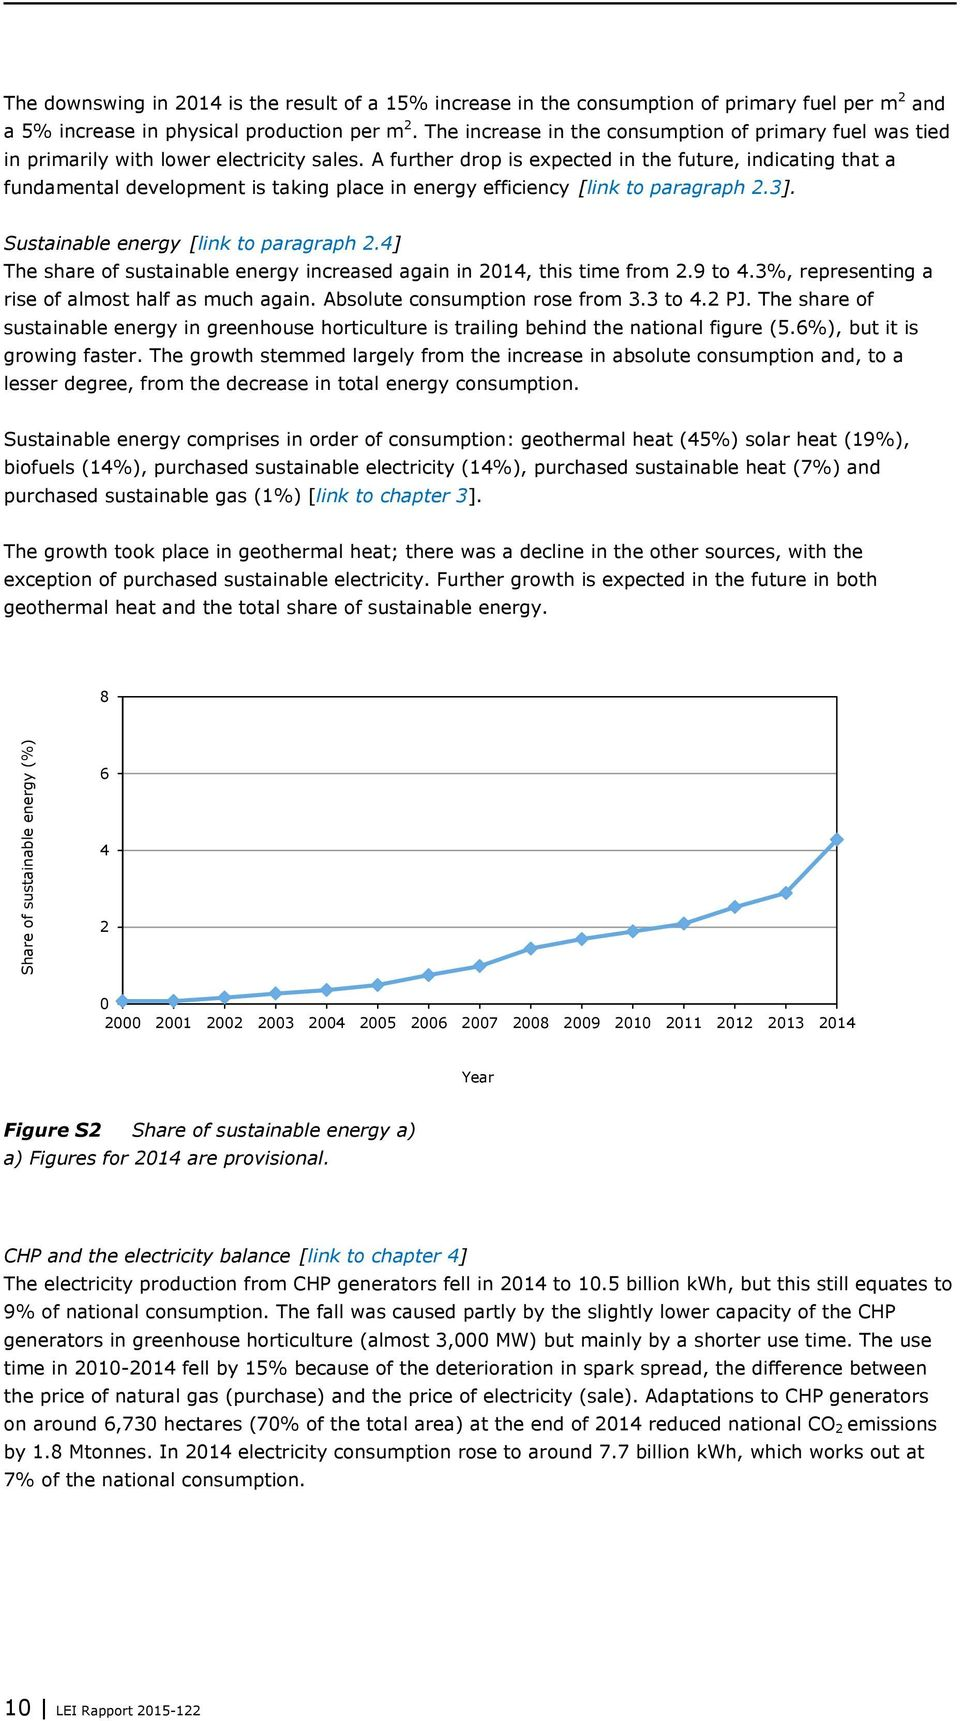 A further drop is expected in the future, indicating that a fundamental development is taking place in energy efficiency [link to paragraph 2.3]. Sustainable energy [link to paragraph 2.